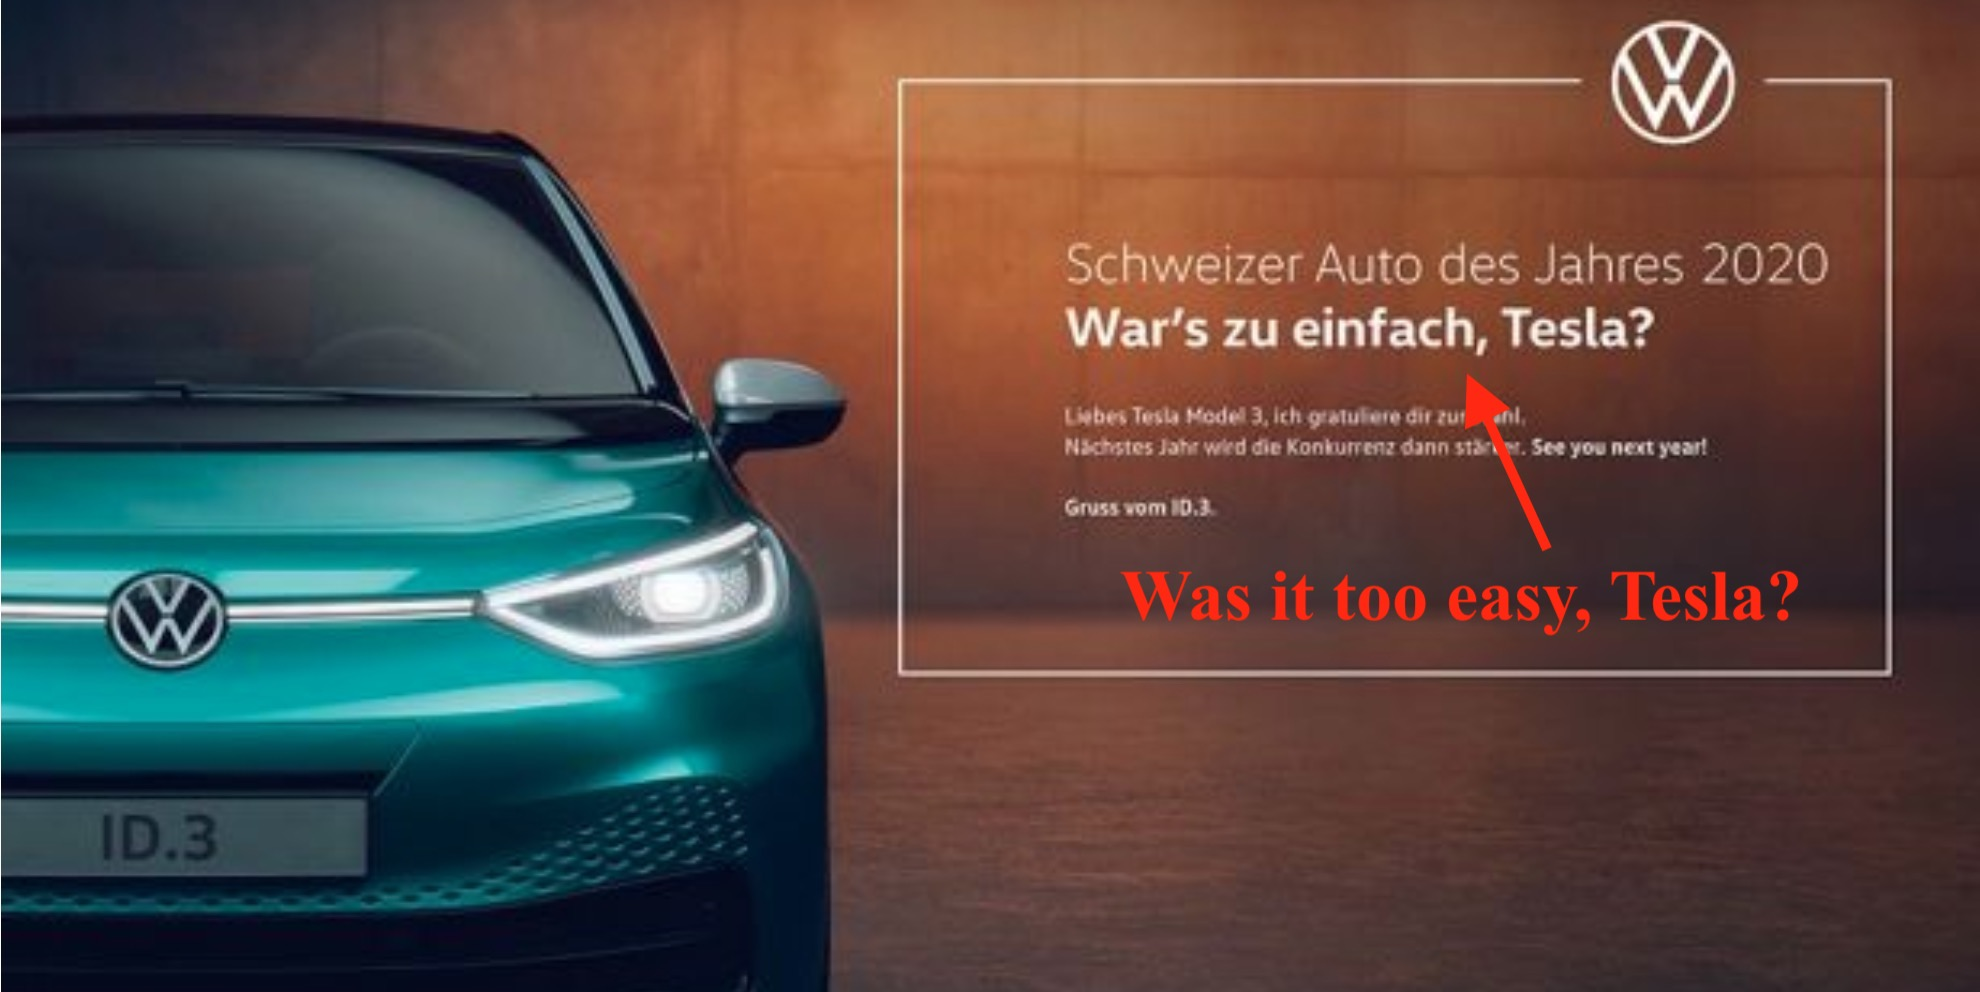 Tesla gets kudos from VW for car of the year award in ad, challenges them with ID.3 - Electrek